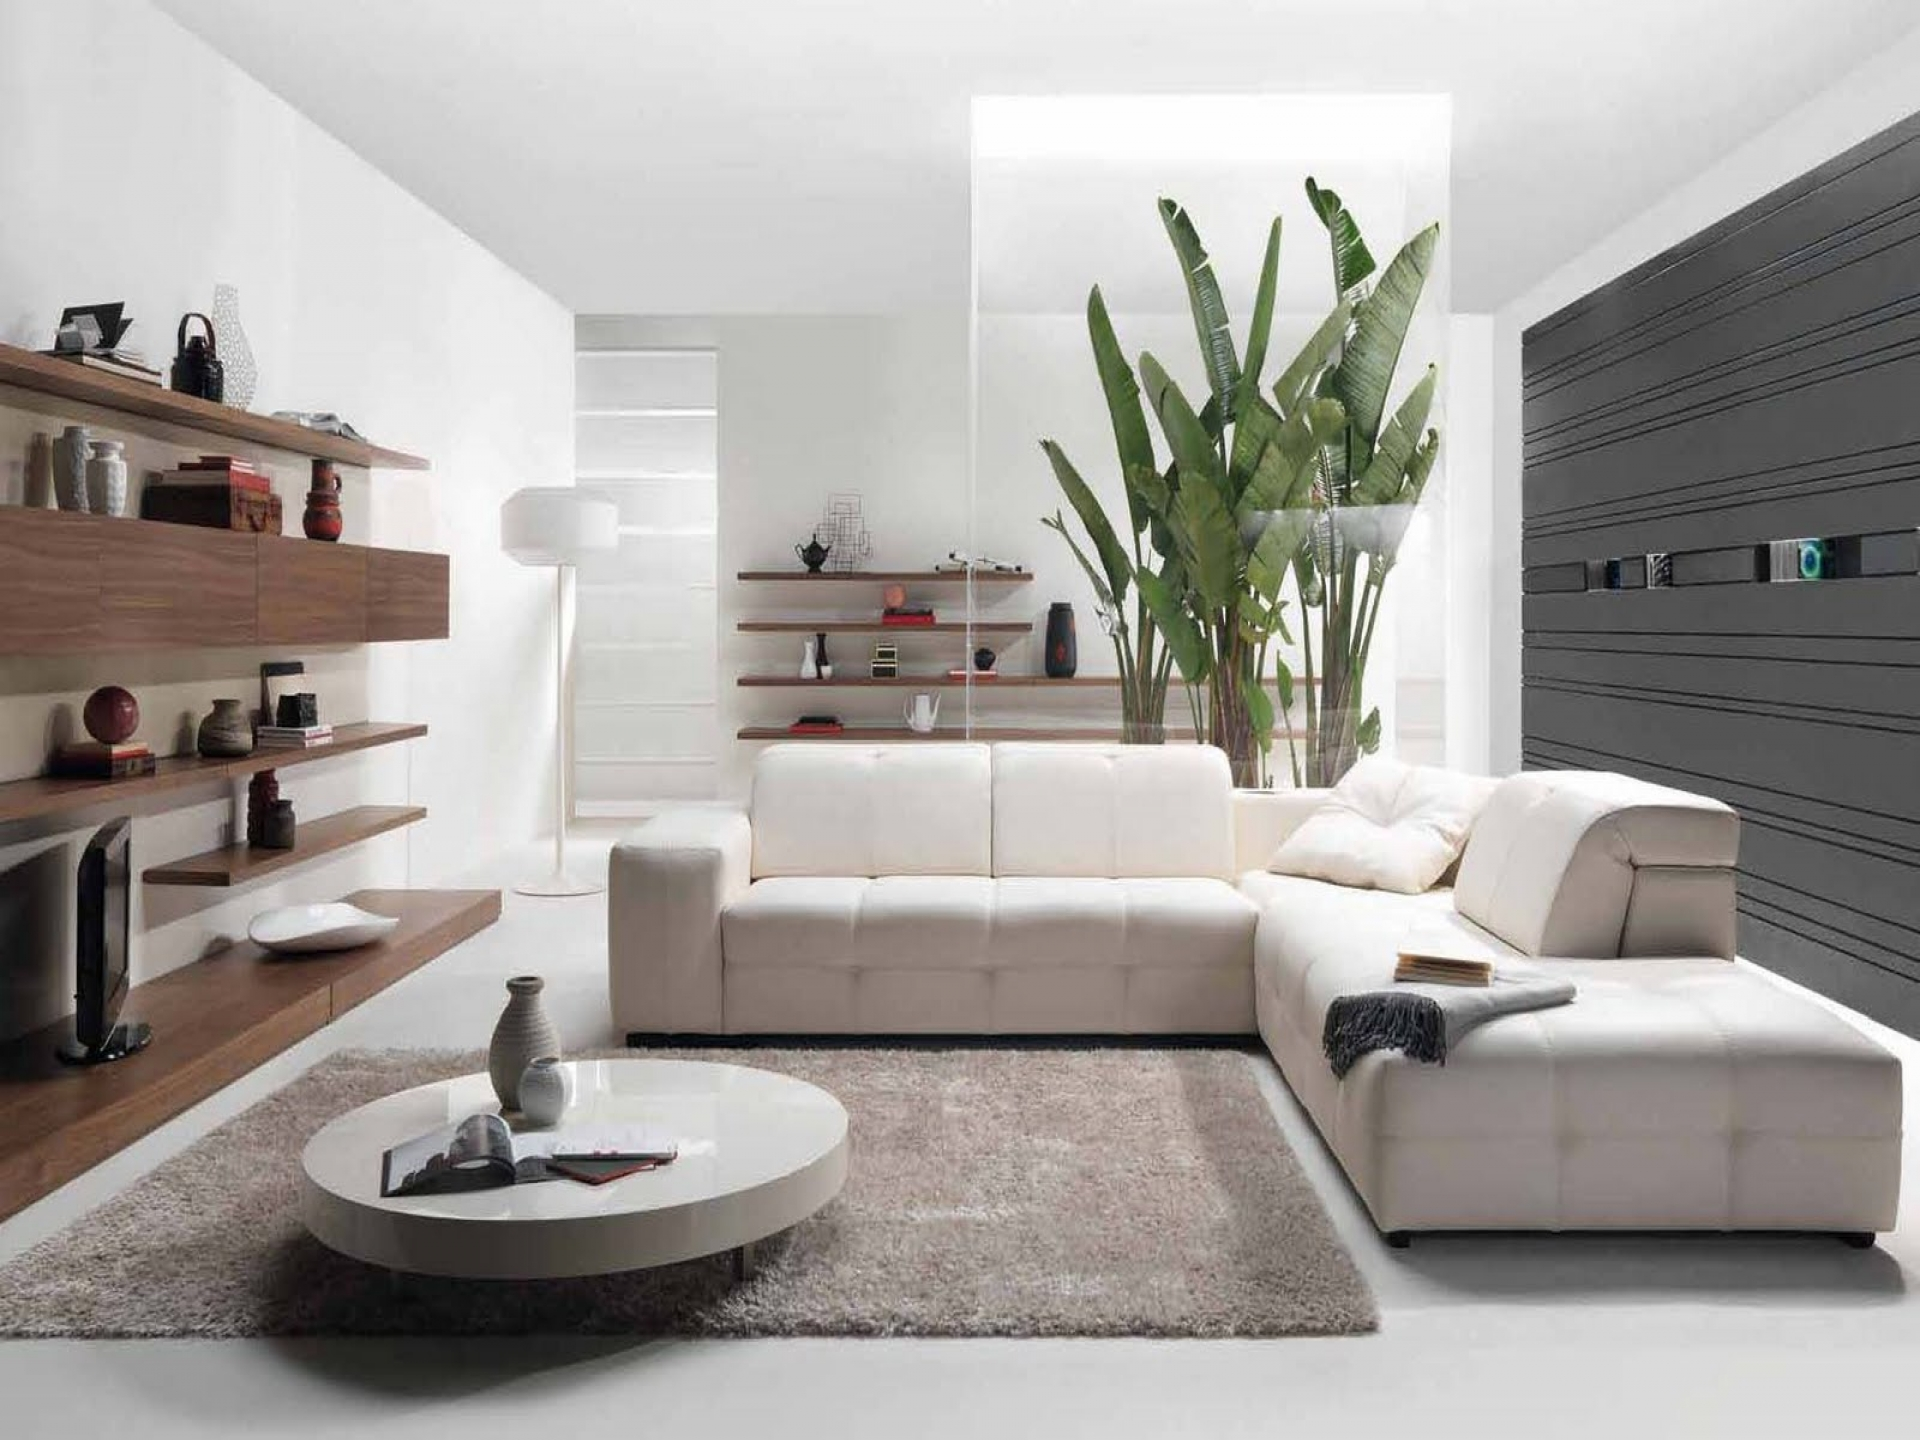 10 Modern White Living Room Decor That you will Love Modern White Living Room Decor 10 Modern White Living Room Decor That you will Love 10 Modern White Living Room Decor That you will Love5